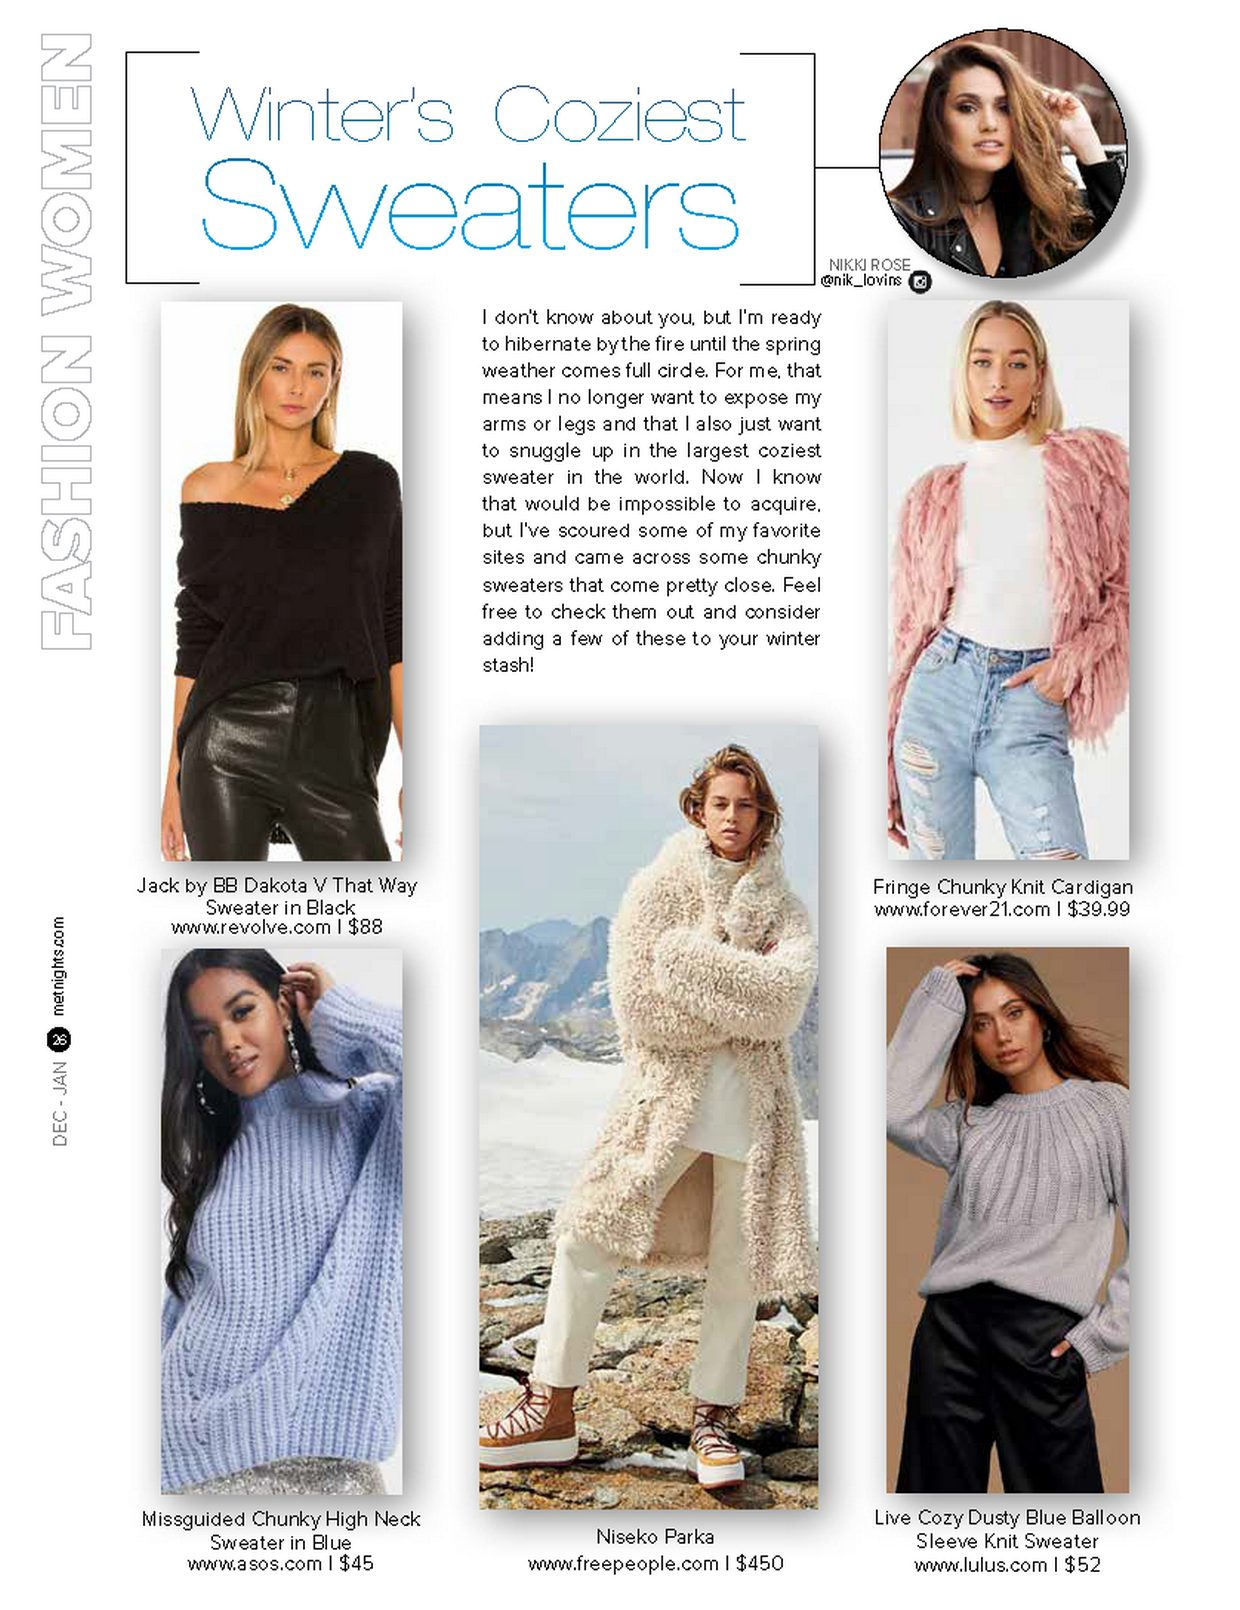 Winter's Coziest Sweaters